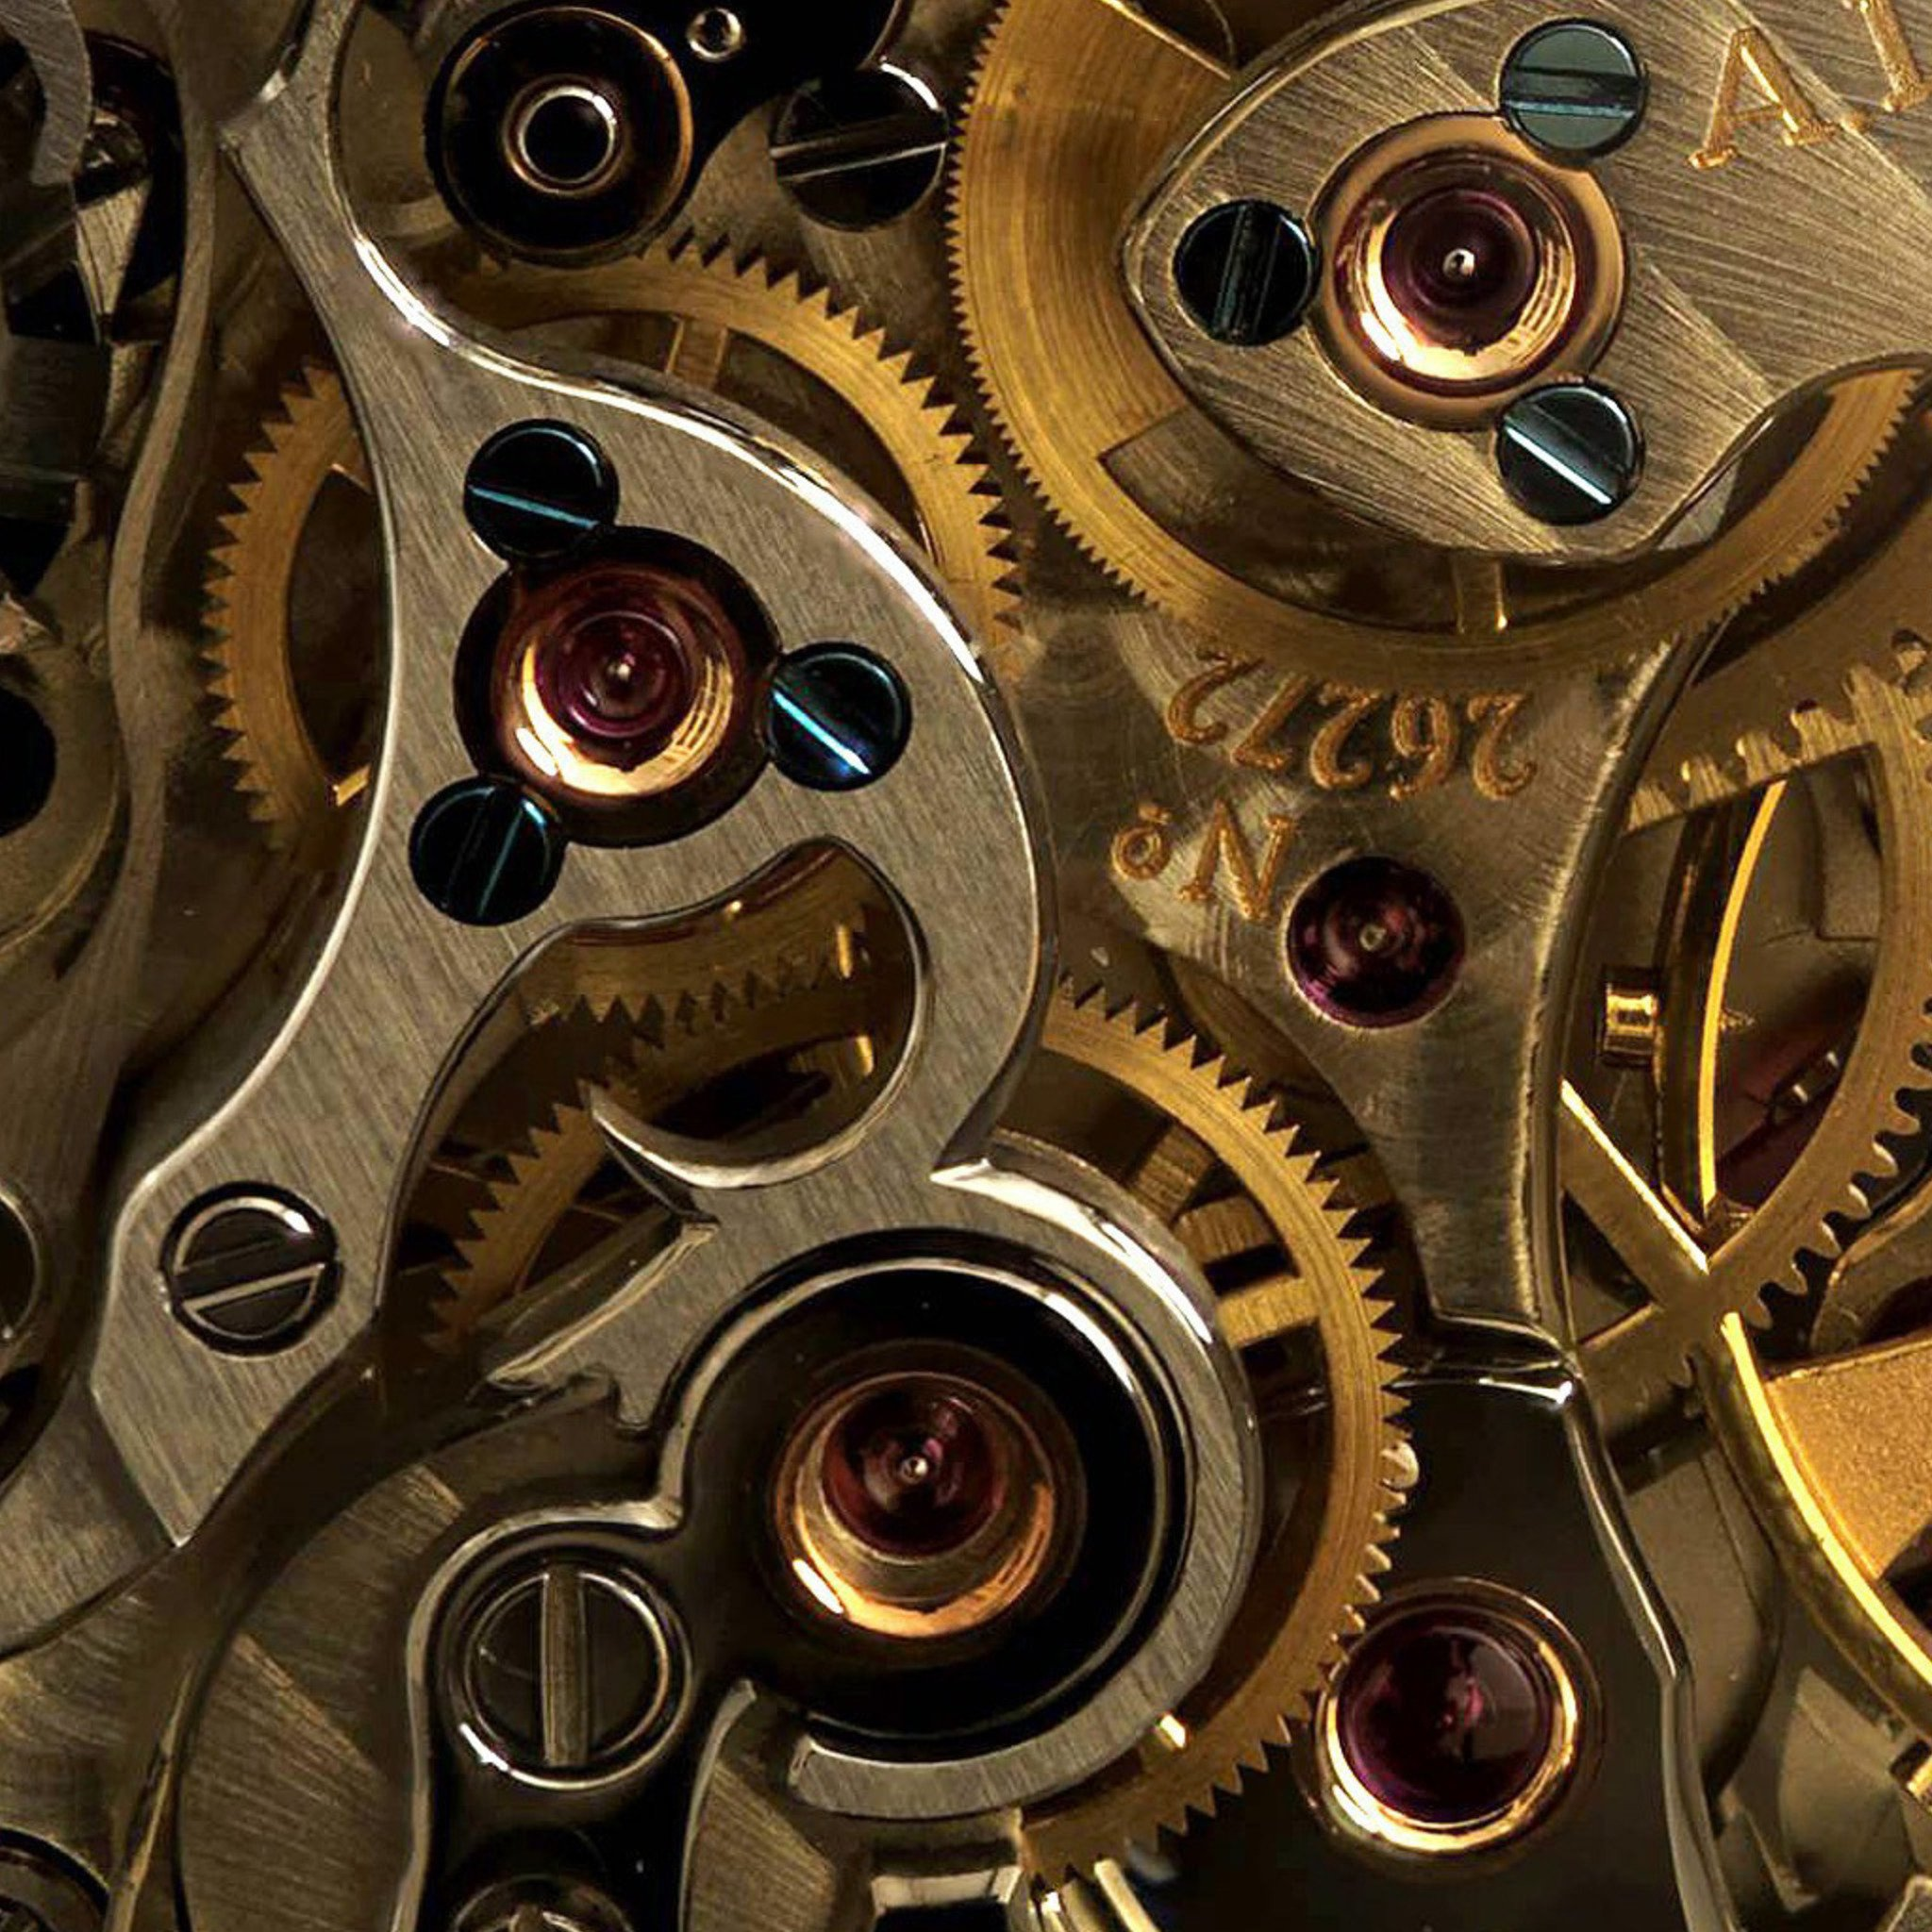 Mechanical Gears Wallpaper Wallpapersafari